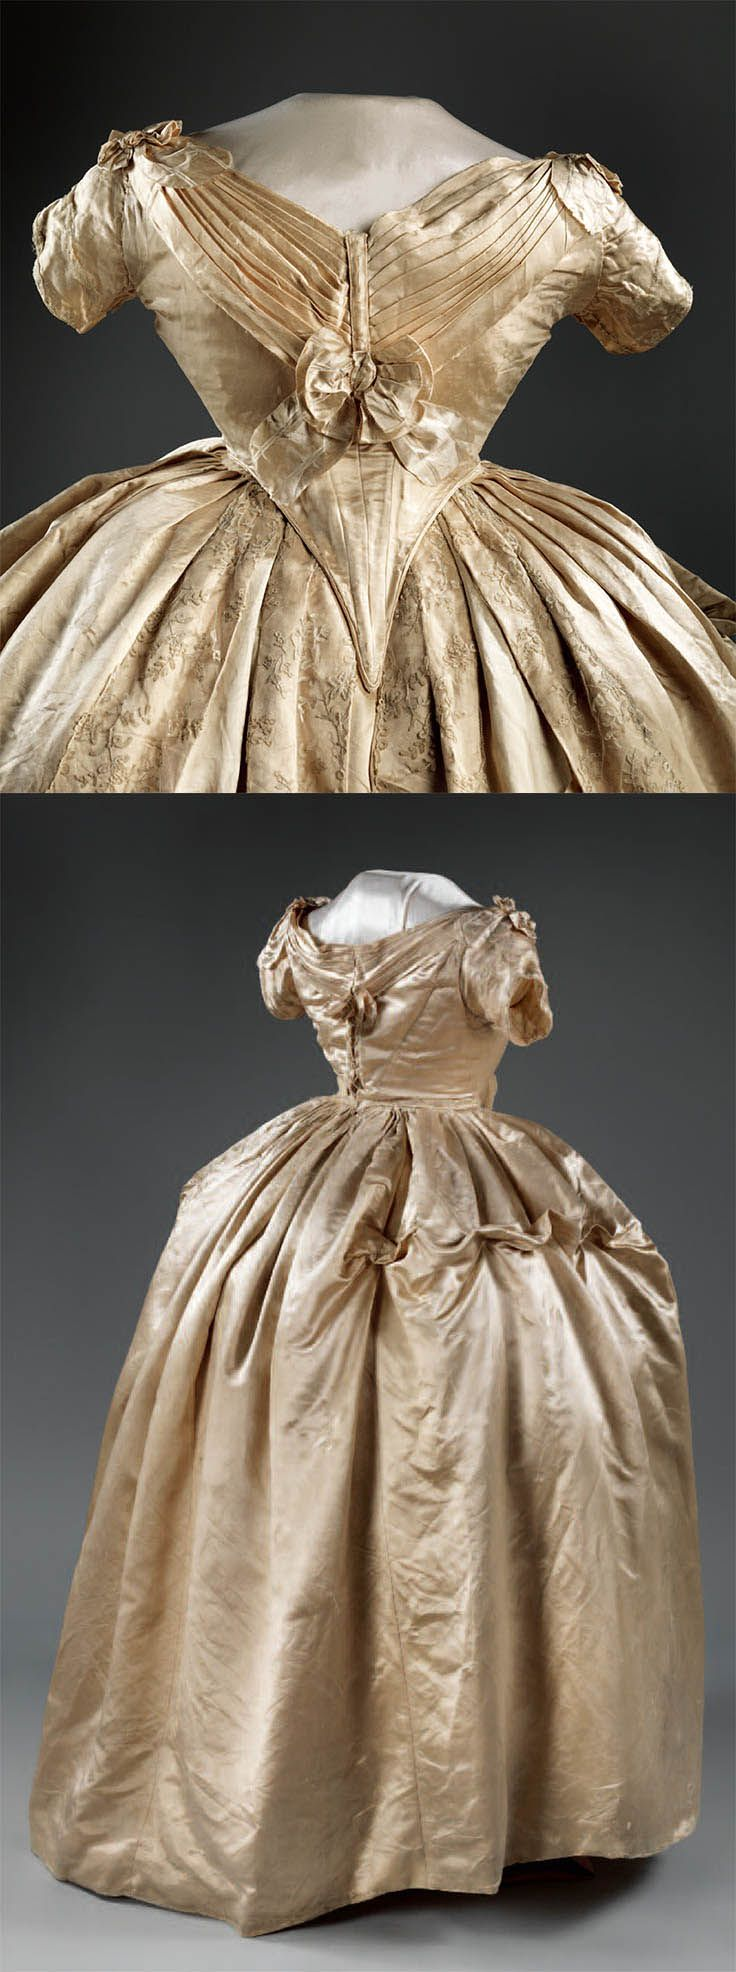 Sarah Childress Polk's grand pink satin brocade ball gown, 1845-1849, made by the Paris couturière Madame Manoury